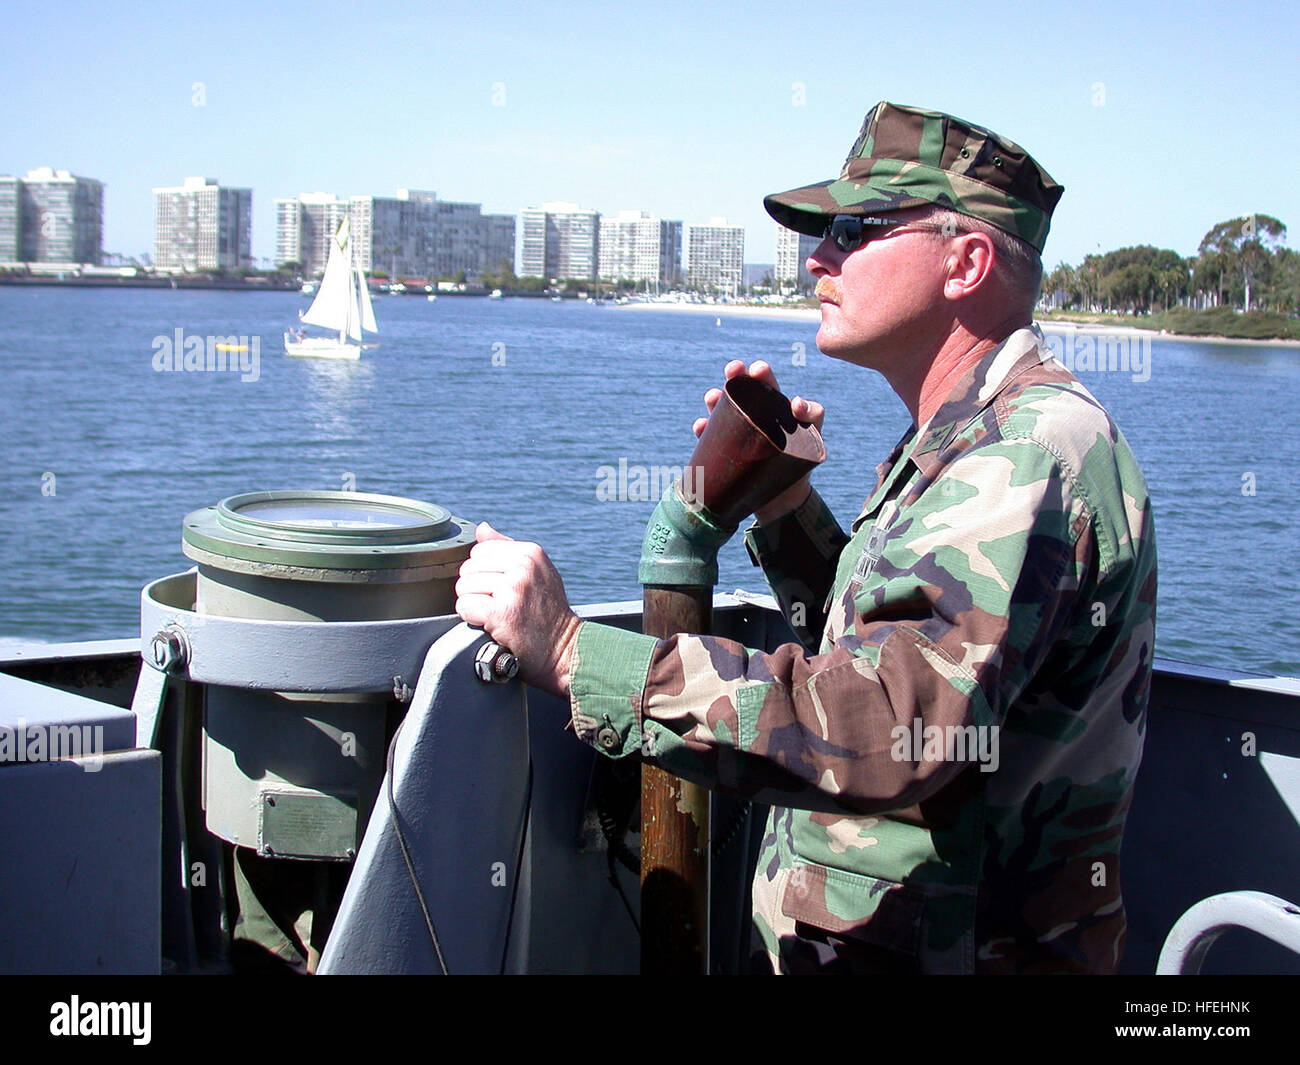 Calif landing craft utility lcu stock photos calif for Craft classes long island